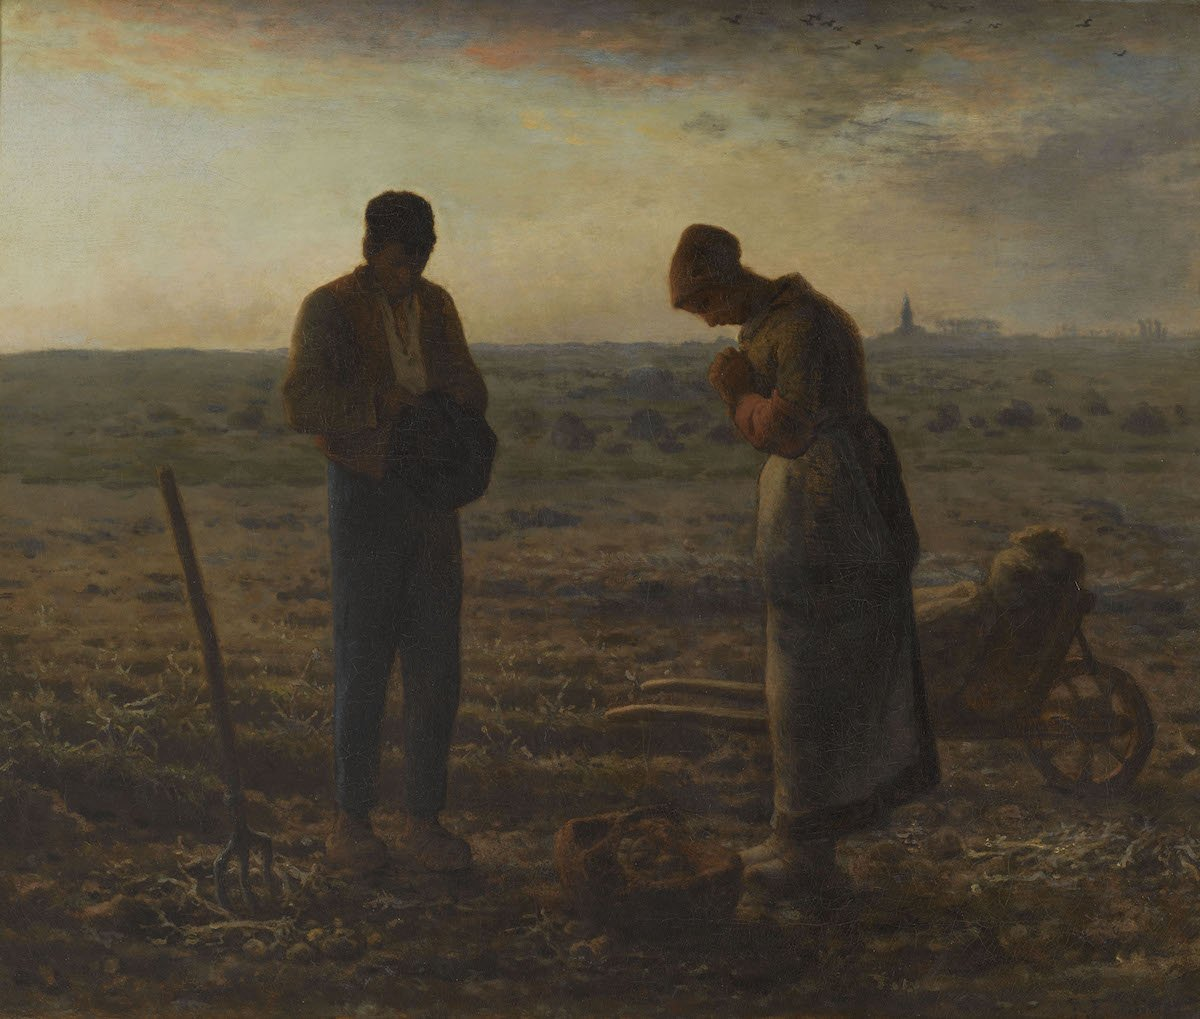 How much did this painting by Millet cost? In 1889 it was auctioned for the highest amount ever paid for an artwork at the time! Many artists were inspired by this work, including Salvador Dalí & Edvard Munch. The Angelus on display in NL for the 1st time: vangogh.nl/s6oT50wAvdV